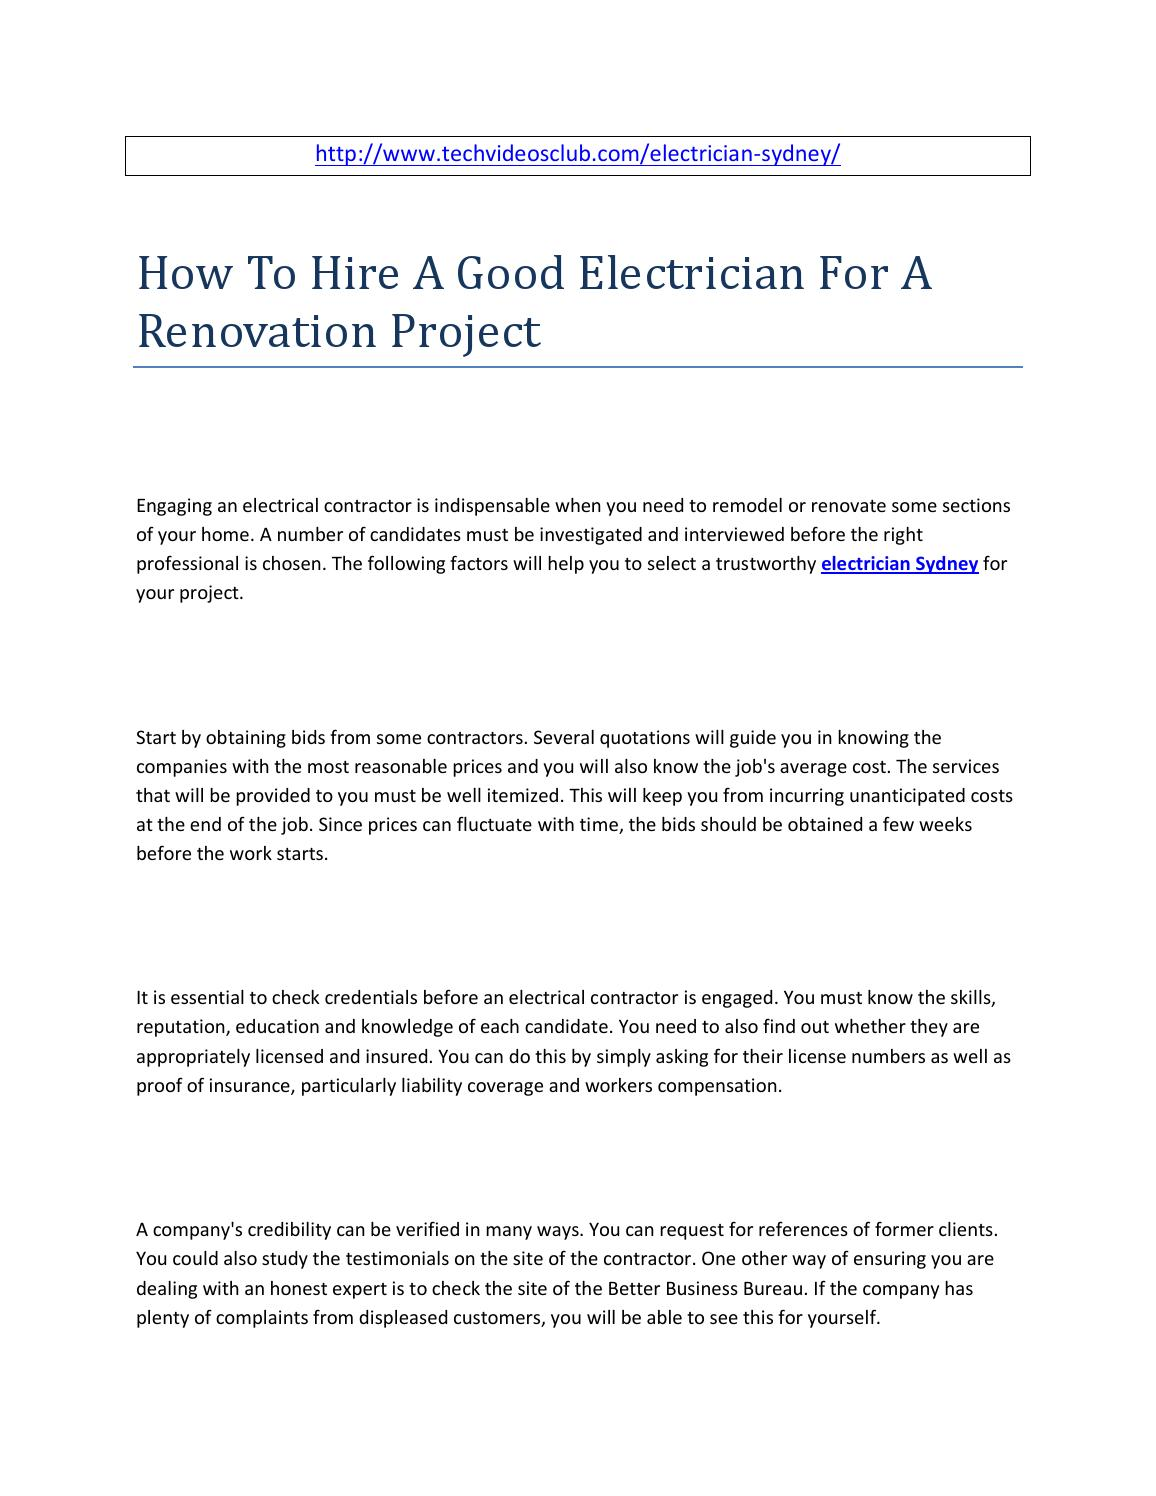 How to hire a good electrician for a renovation project by angelina